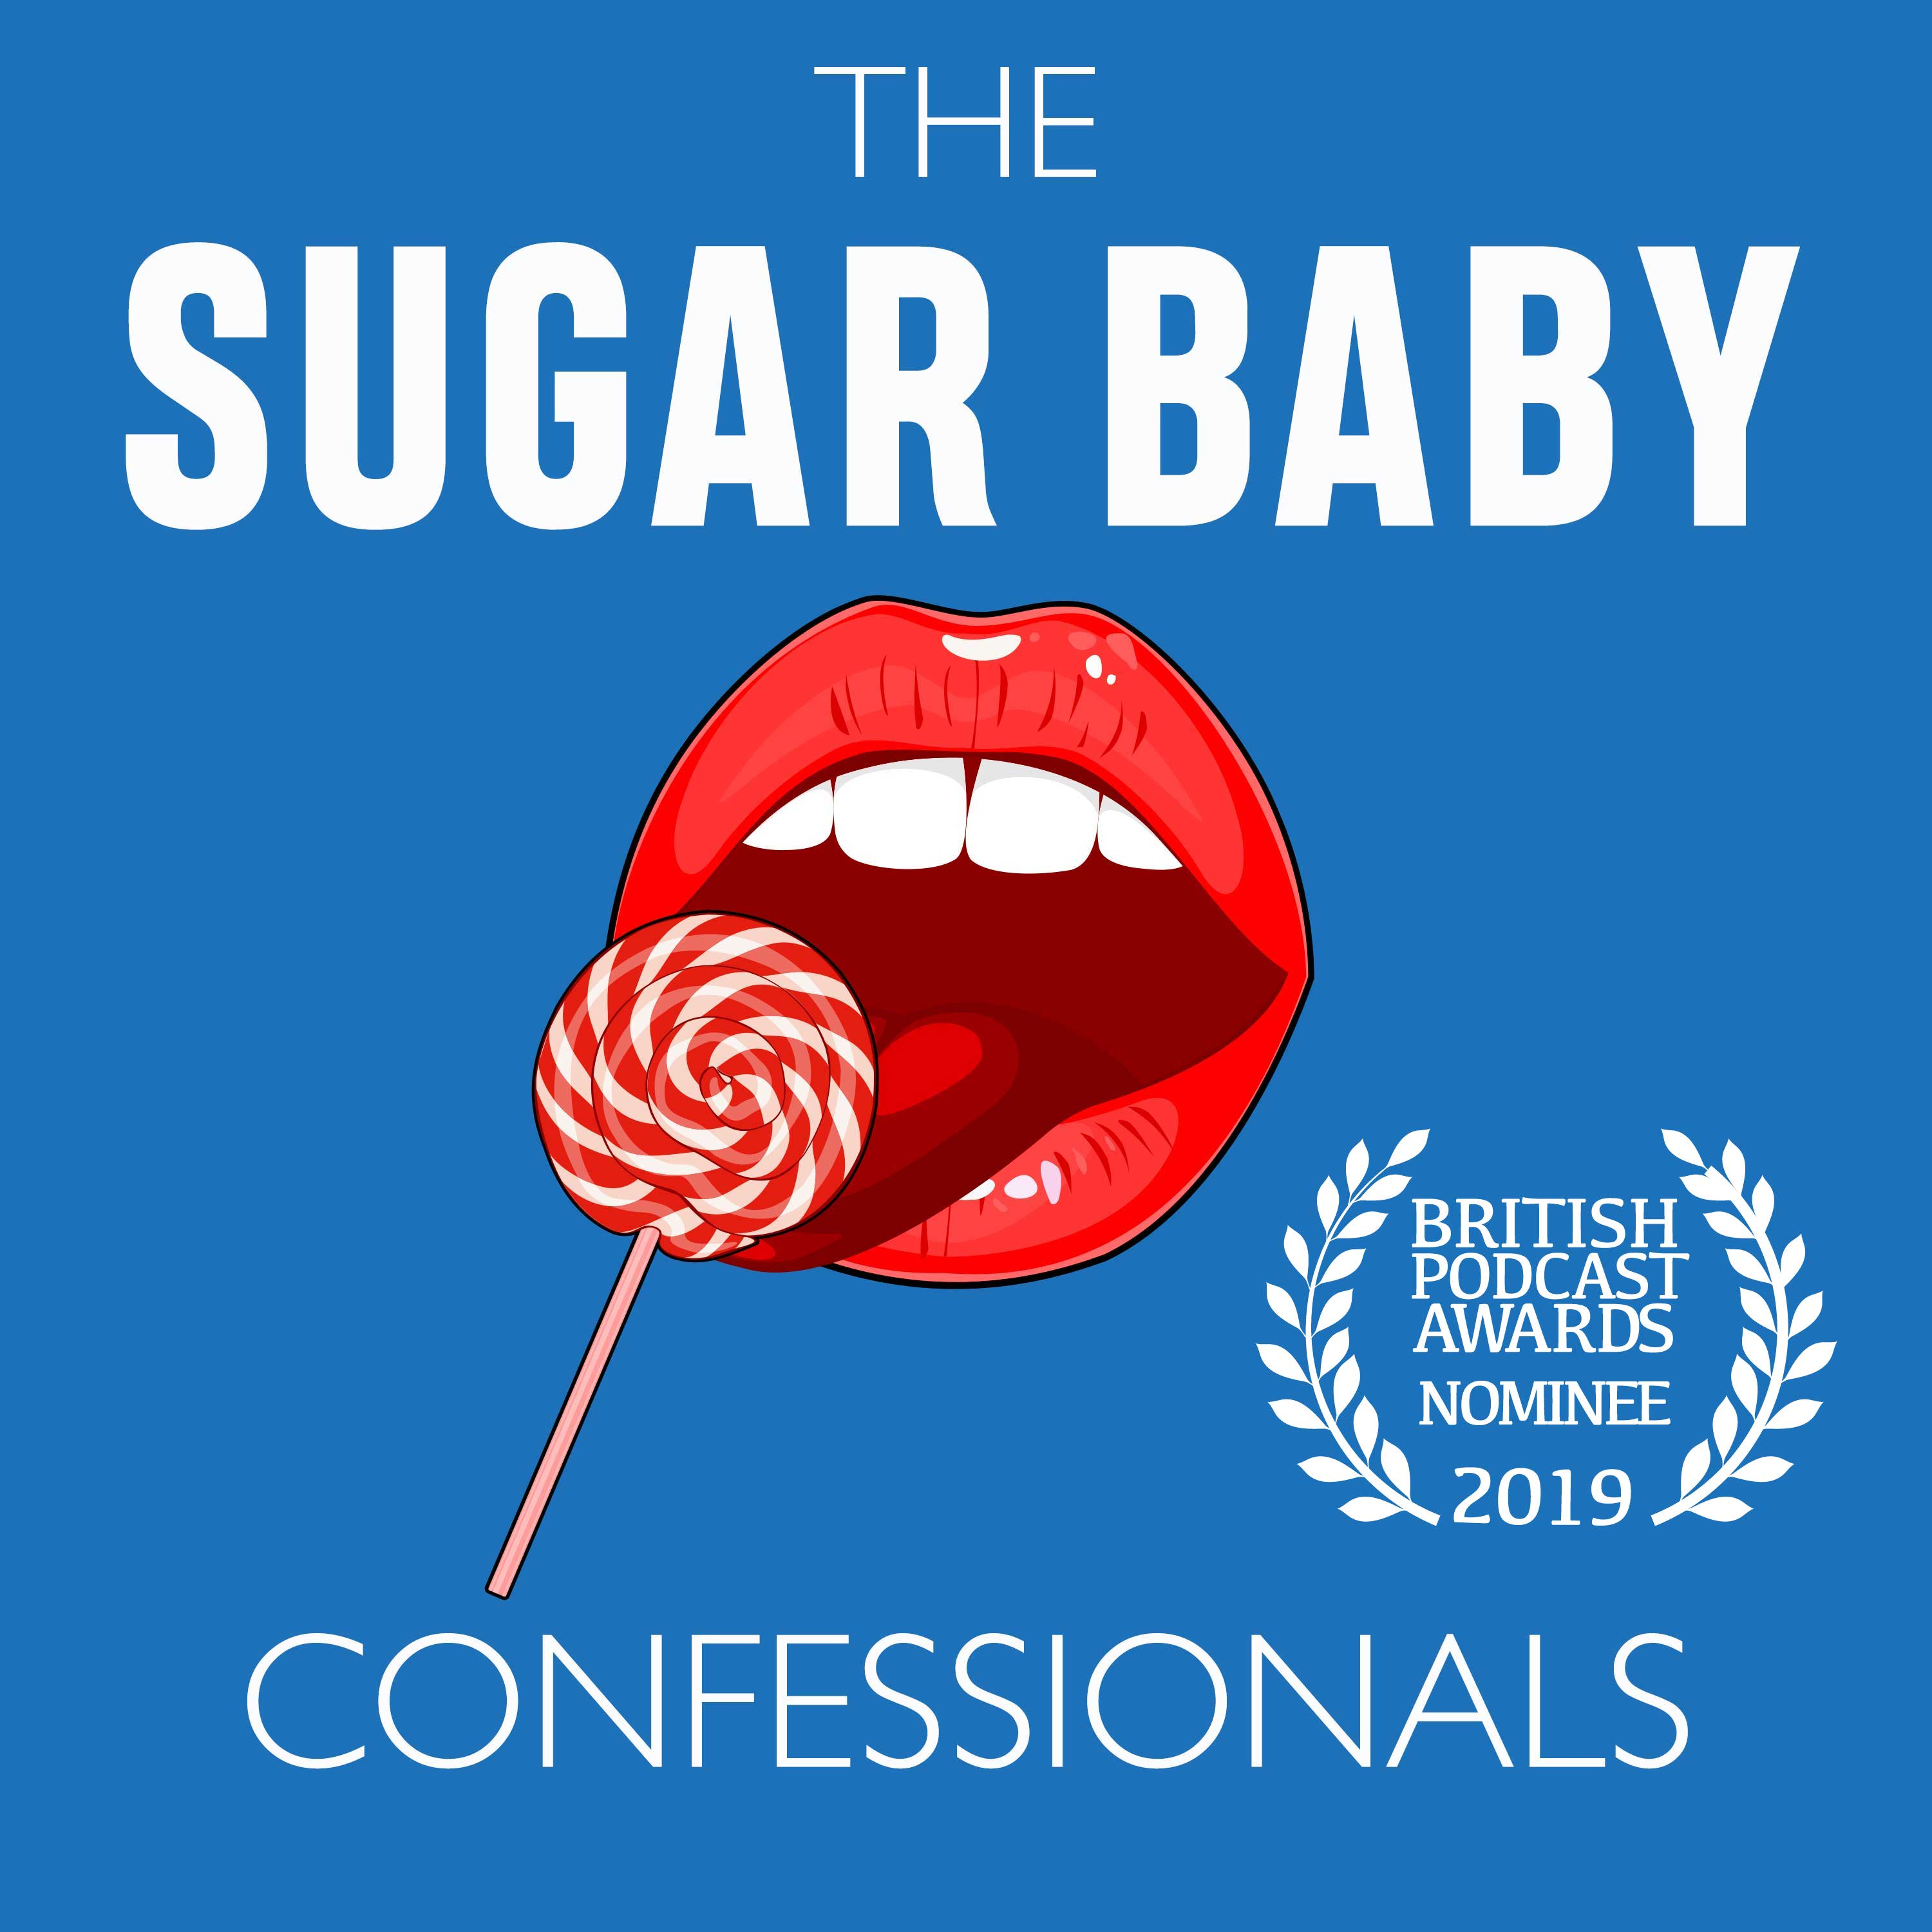 The Sugar Baby Confessionals logo, red lips and a lollipop against a blue background, with the 2019 British Podcast Awards nominee image